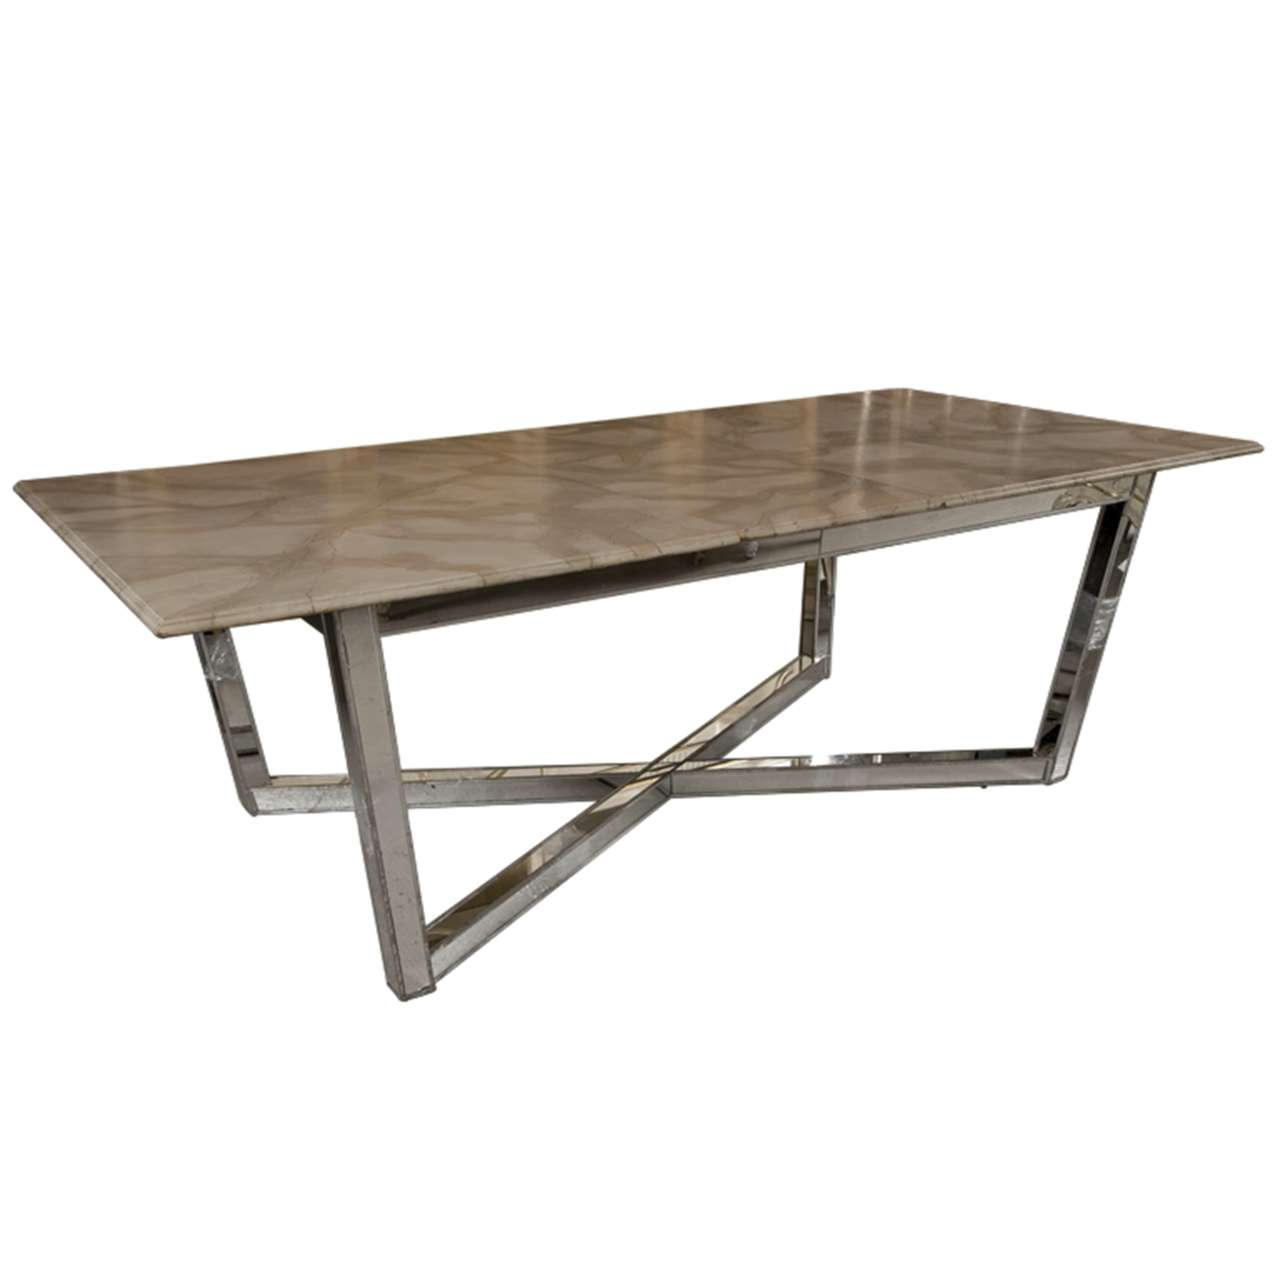 Mirrored base faux marble top dining table at 1stdibs for The best dining tables